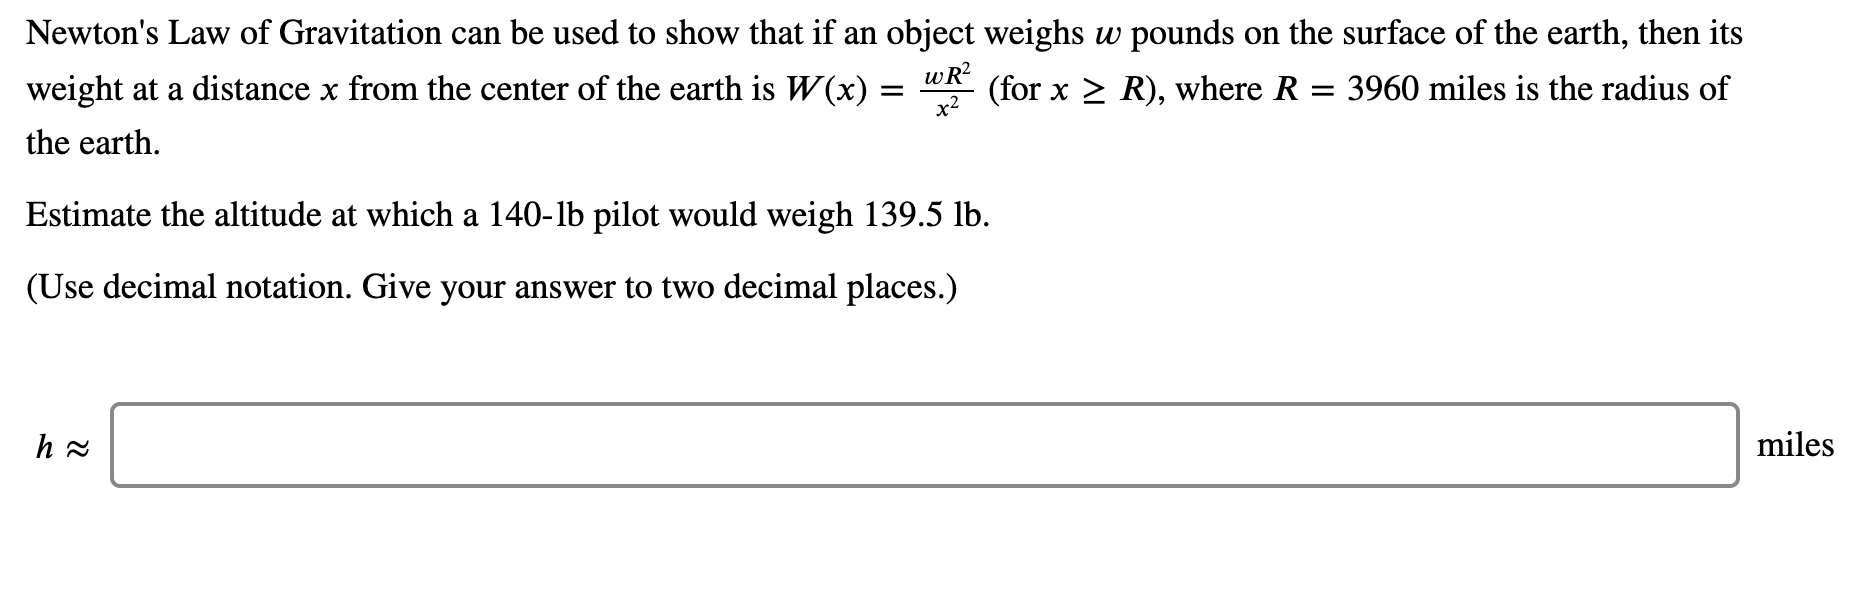 Newton's Law of Gravitation can be used to show that if an object weighs w pounds on the surface of the earth, then its weight at a distance x from the center of the earth is W(x) = wR? (for x > R), where R = 3960 miles is the radius of the earth. Estimate the altitude at which a 140-lb pilot would weigh 139.5 lb. (Use decimal notation. Give your answer to two decimal places.)